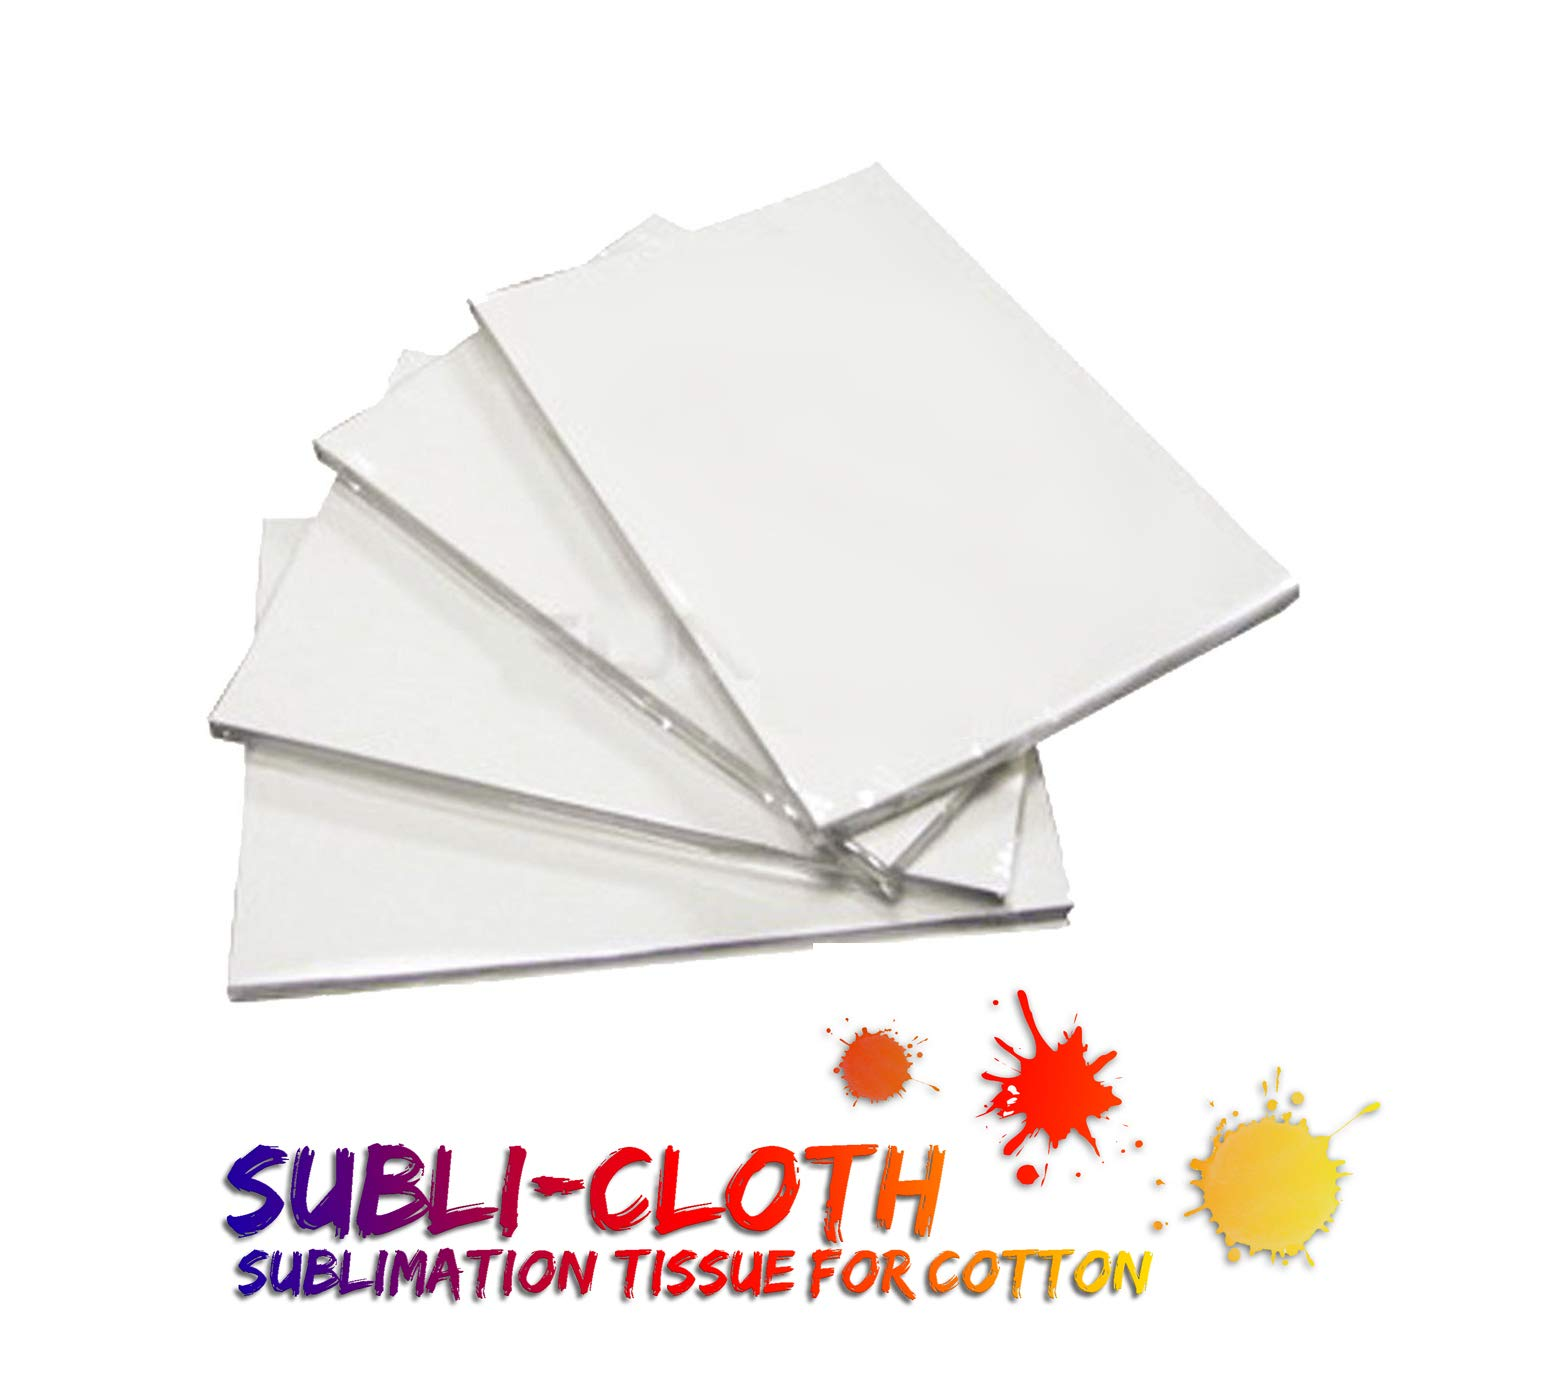 Subli-Cloth Cotton Sublimation Dark & Light Cloth Fabric Sheet Pack x 20 Units A4 (8.5'' x 11.5'') (21cmx29cm)